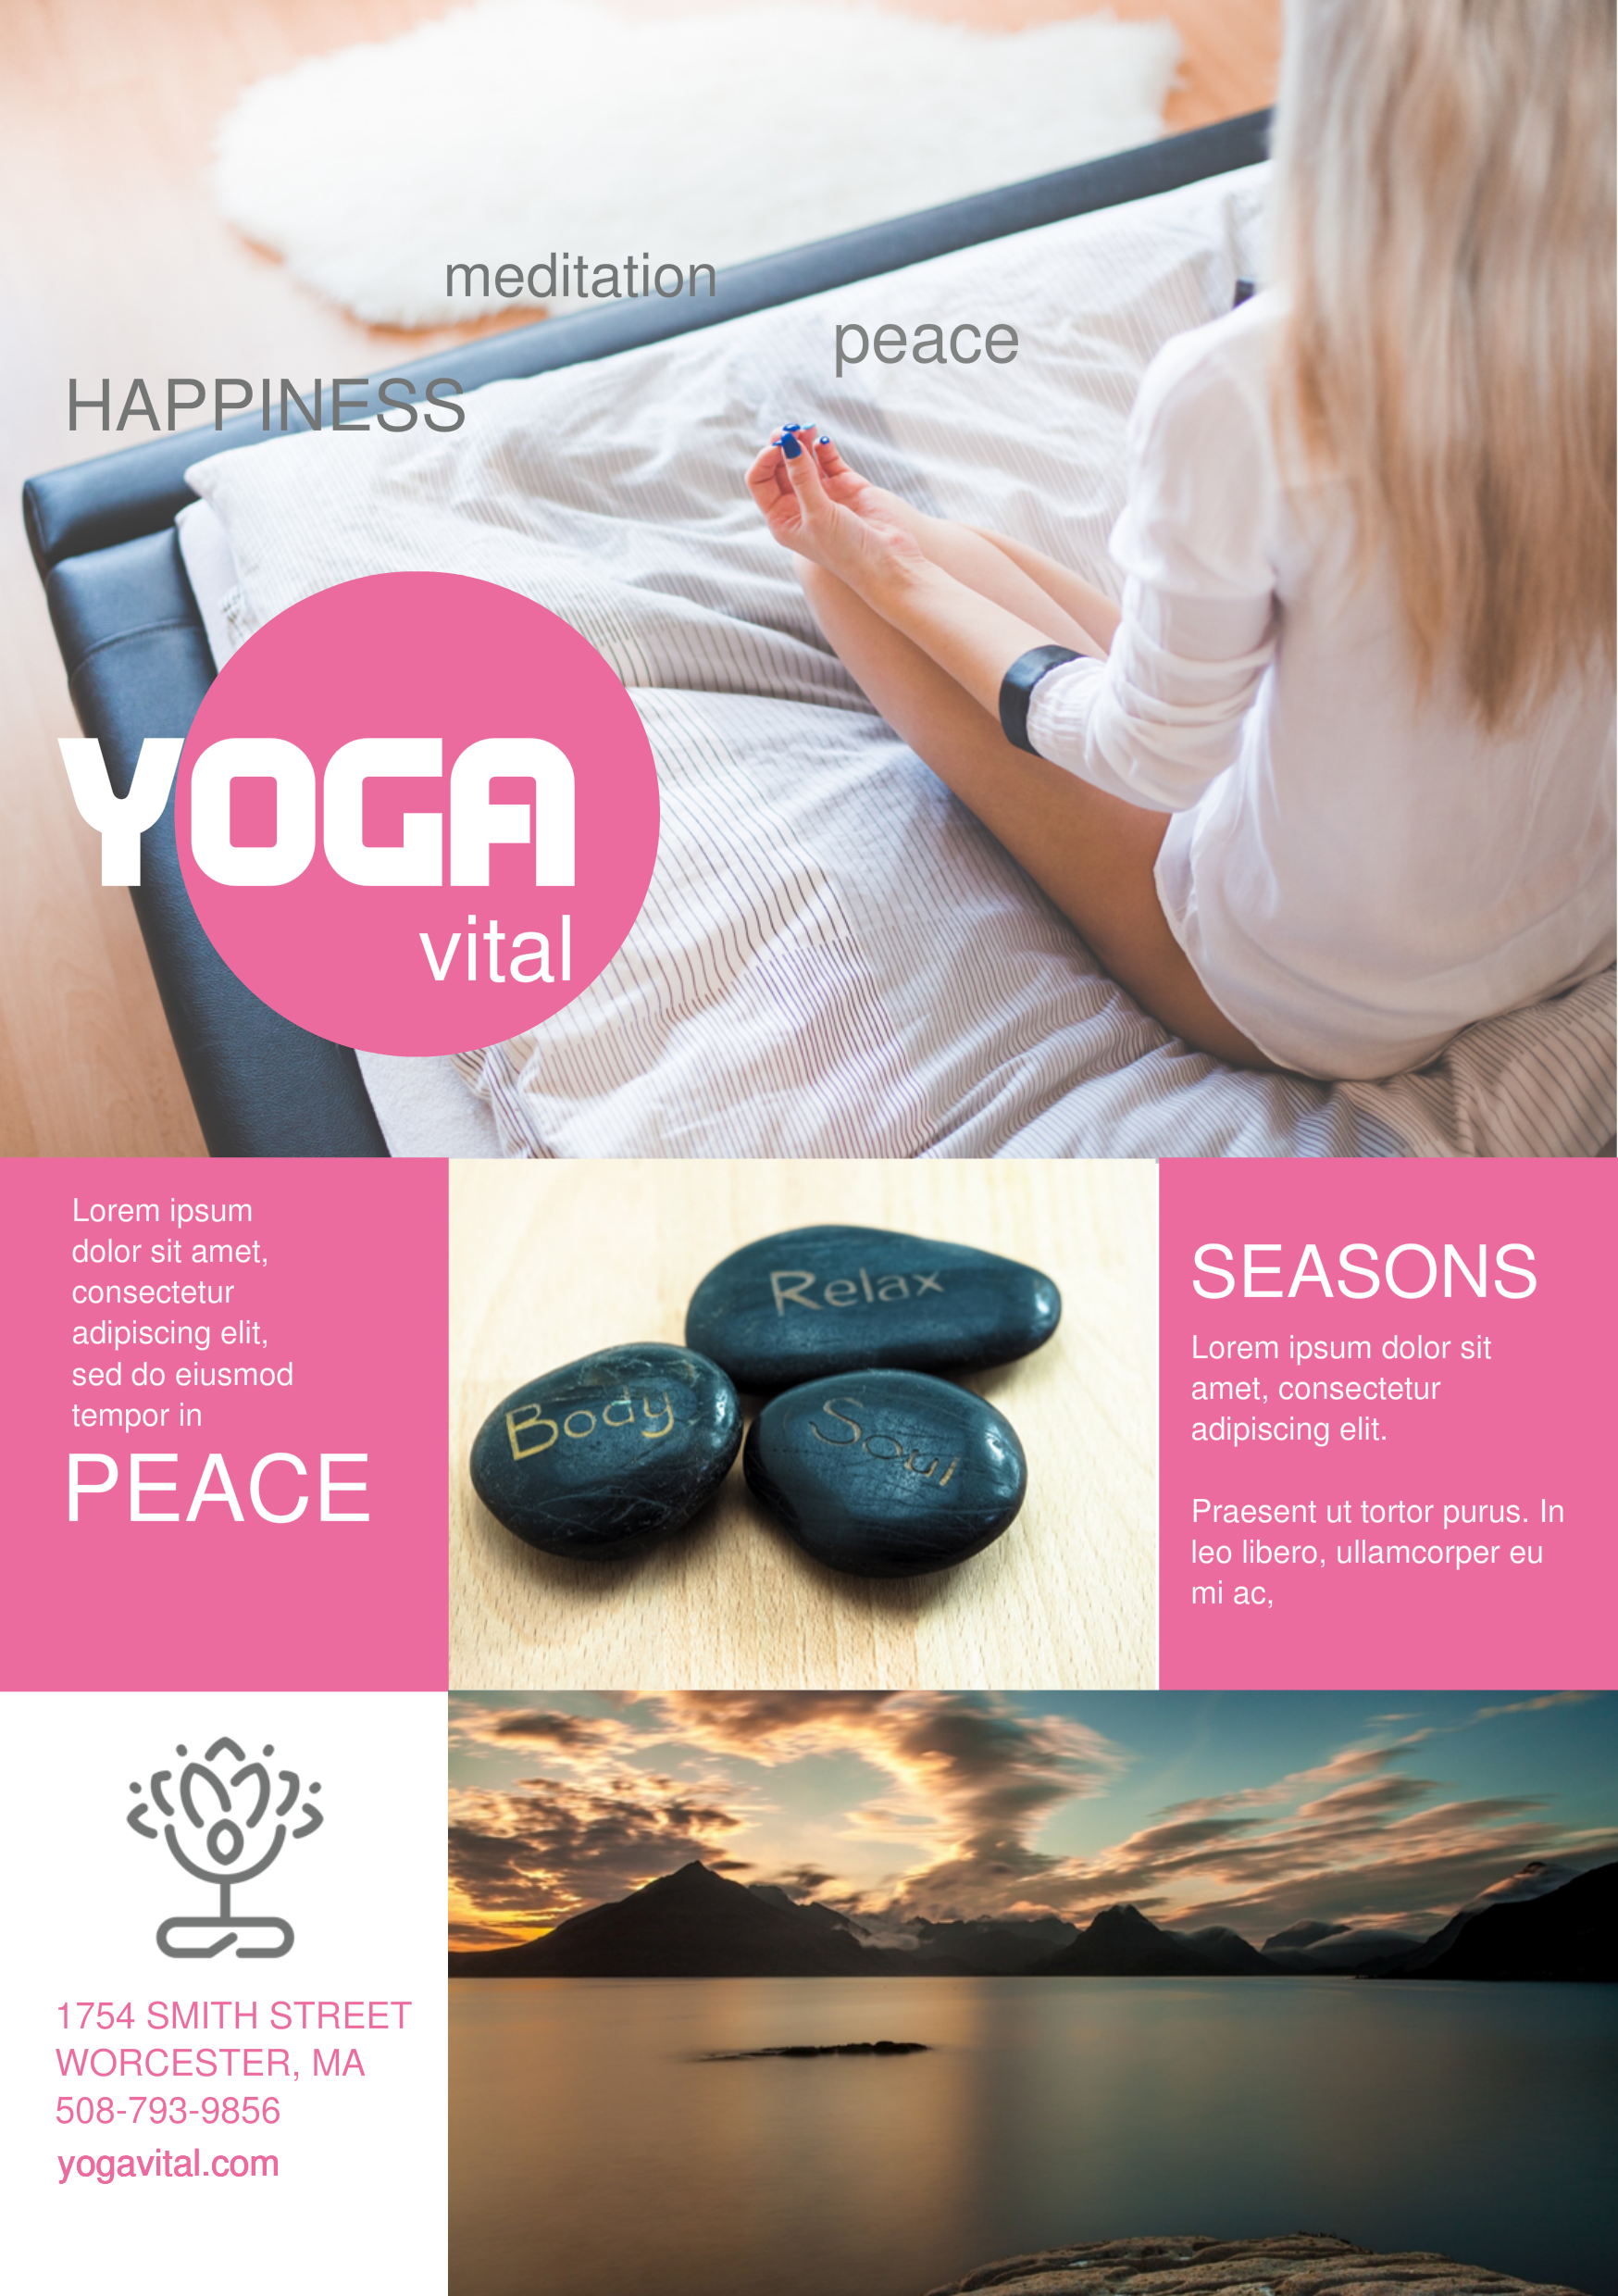 Yoga A Promotional Flyer HttpPremadevideosComAFlyer